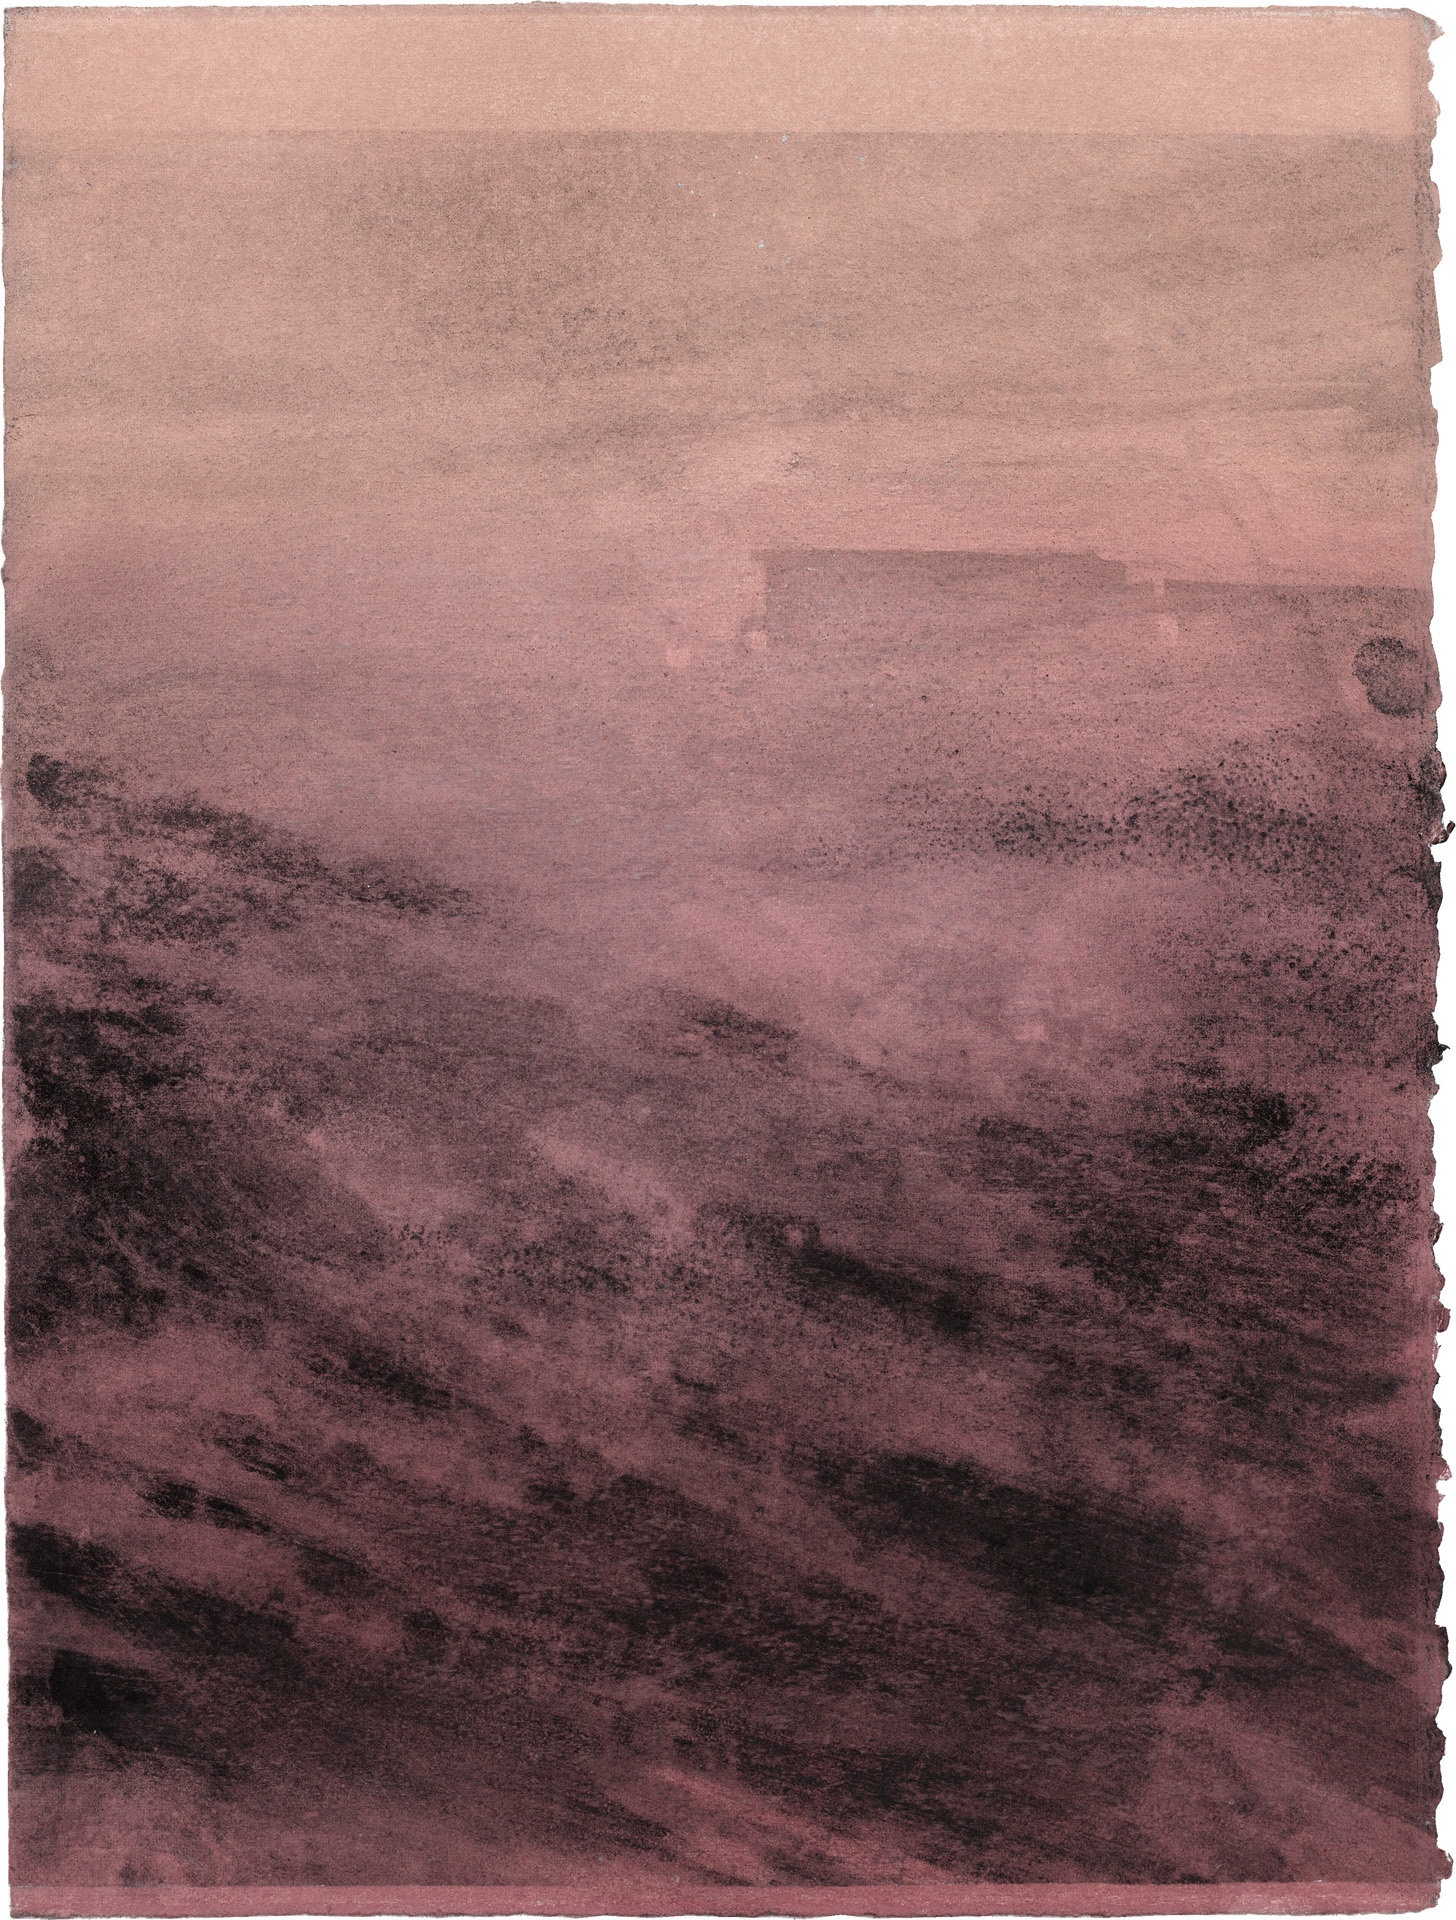 Nora Mona Bach – Weiler, 2020, pastel, charcoal on paper, 39 x 29 cm